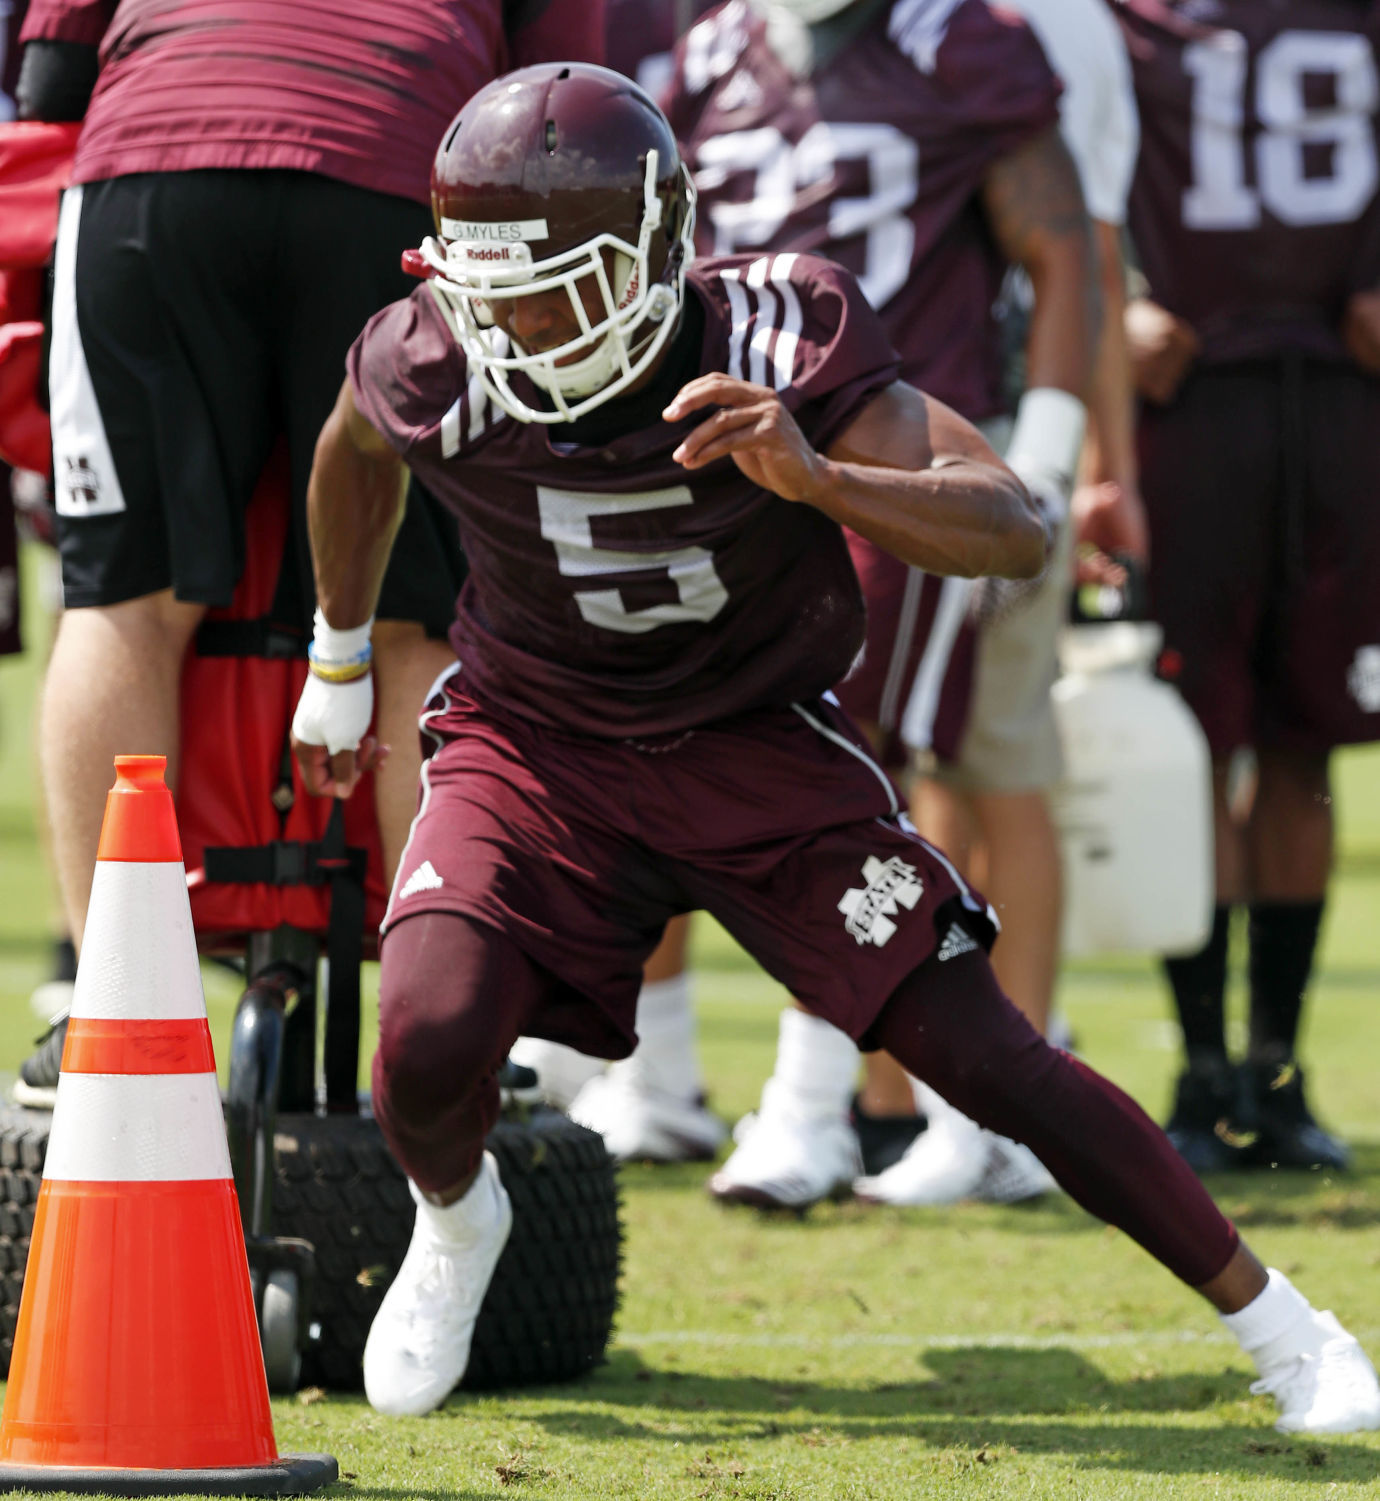 Mississippi State RB Kylin Hill, 4-star recruit, arrested